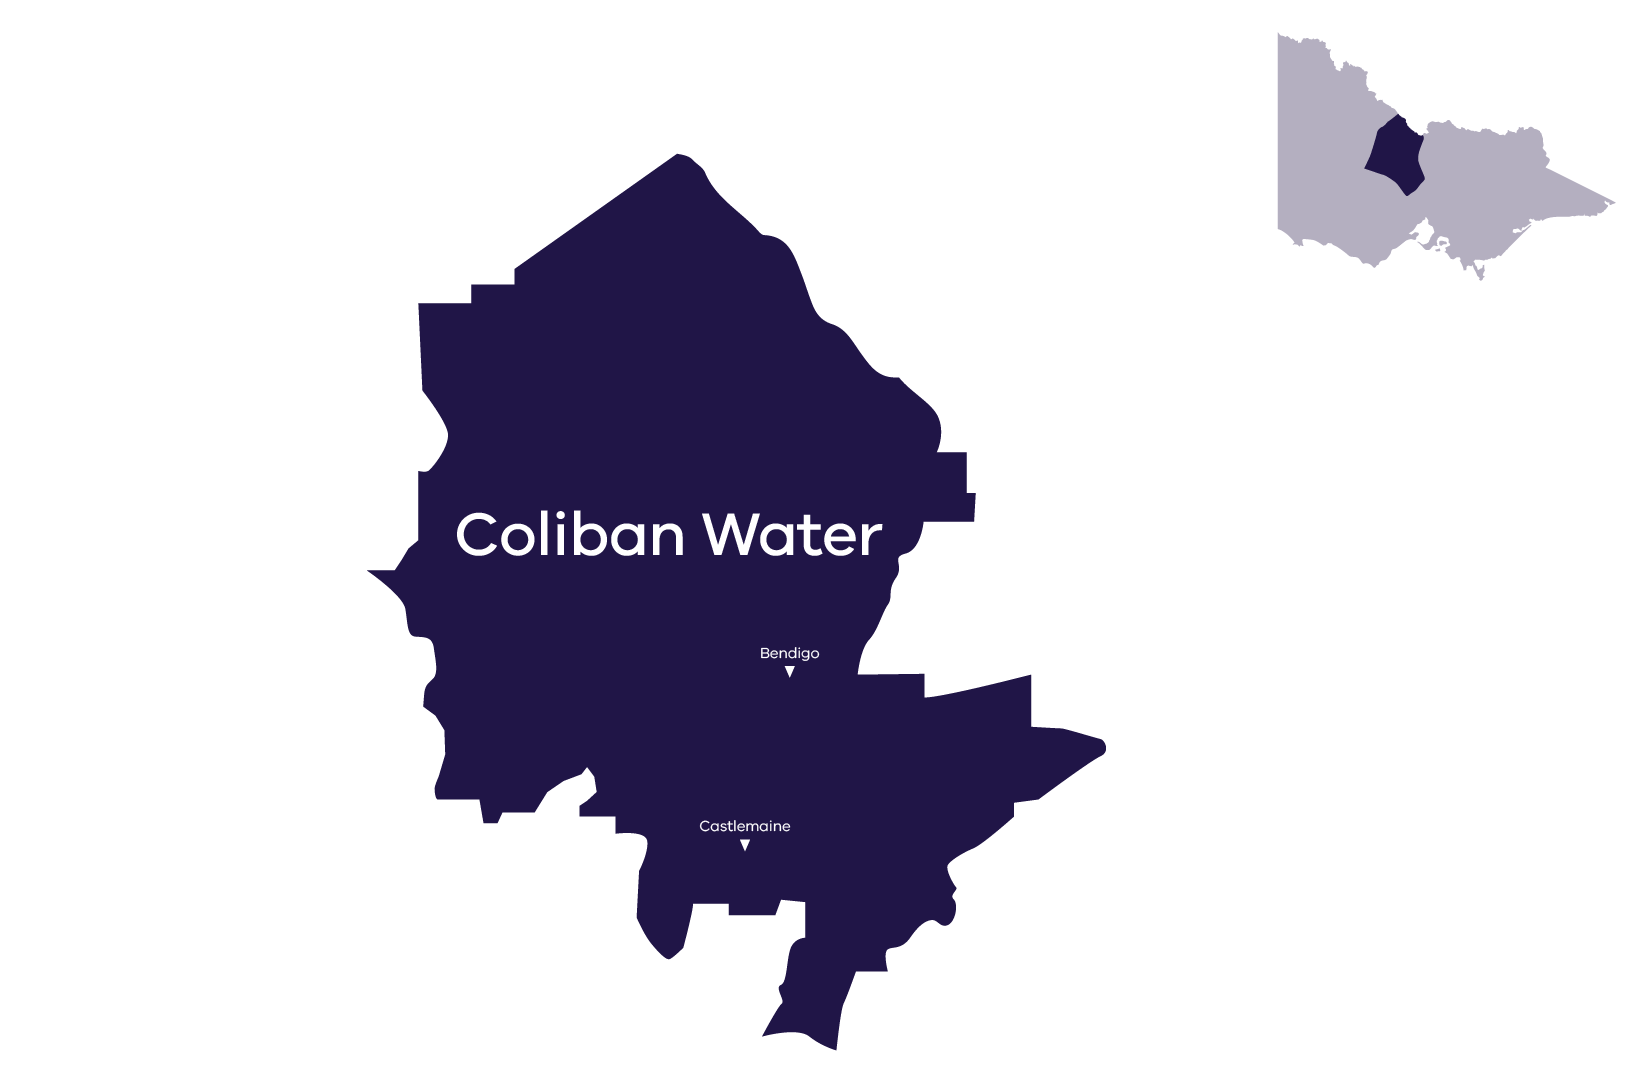 Stylised map of Coliban Water's service area. For more information call Coliban Water on 1300 363 200